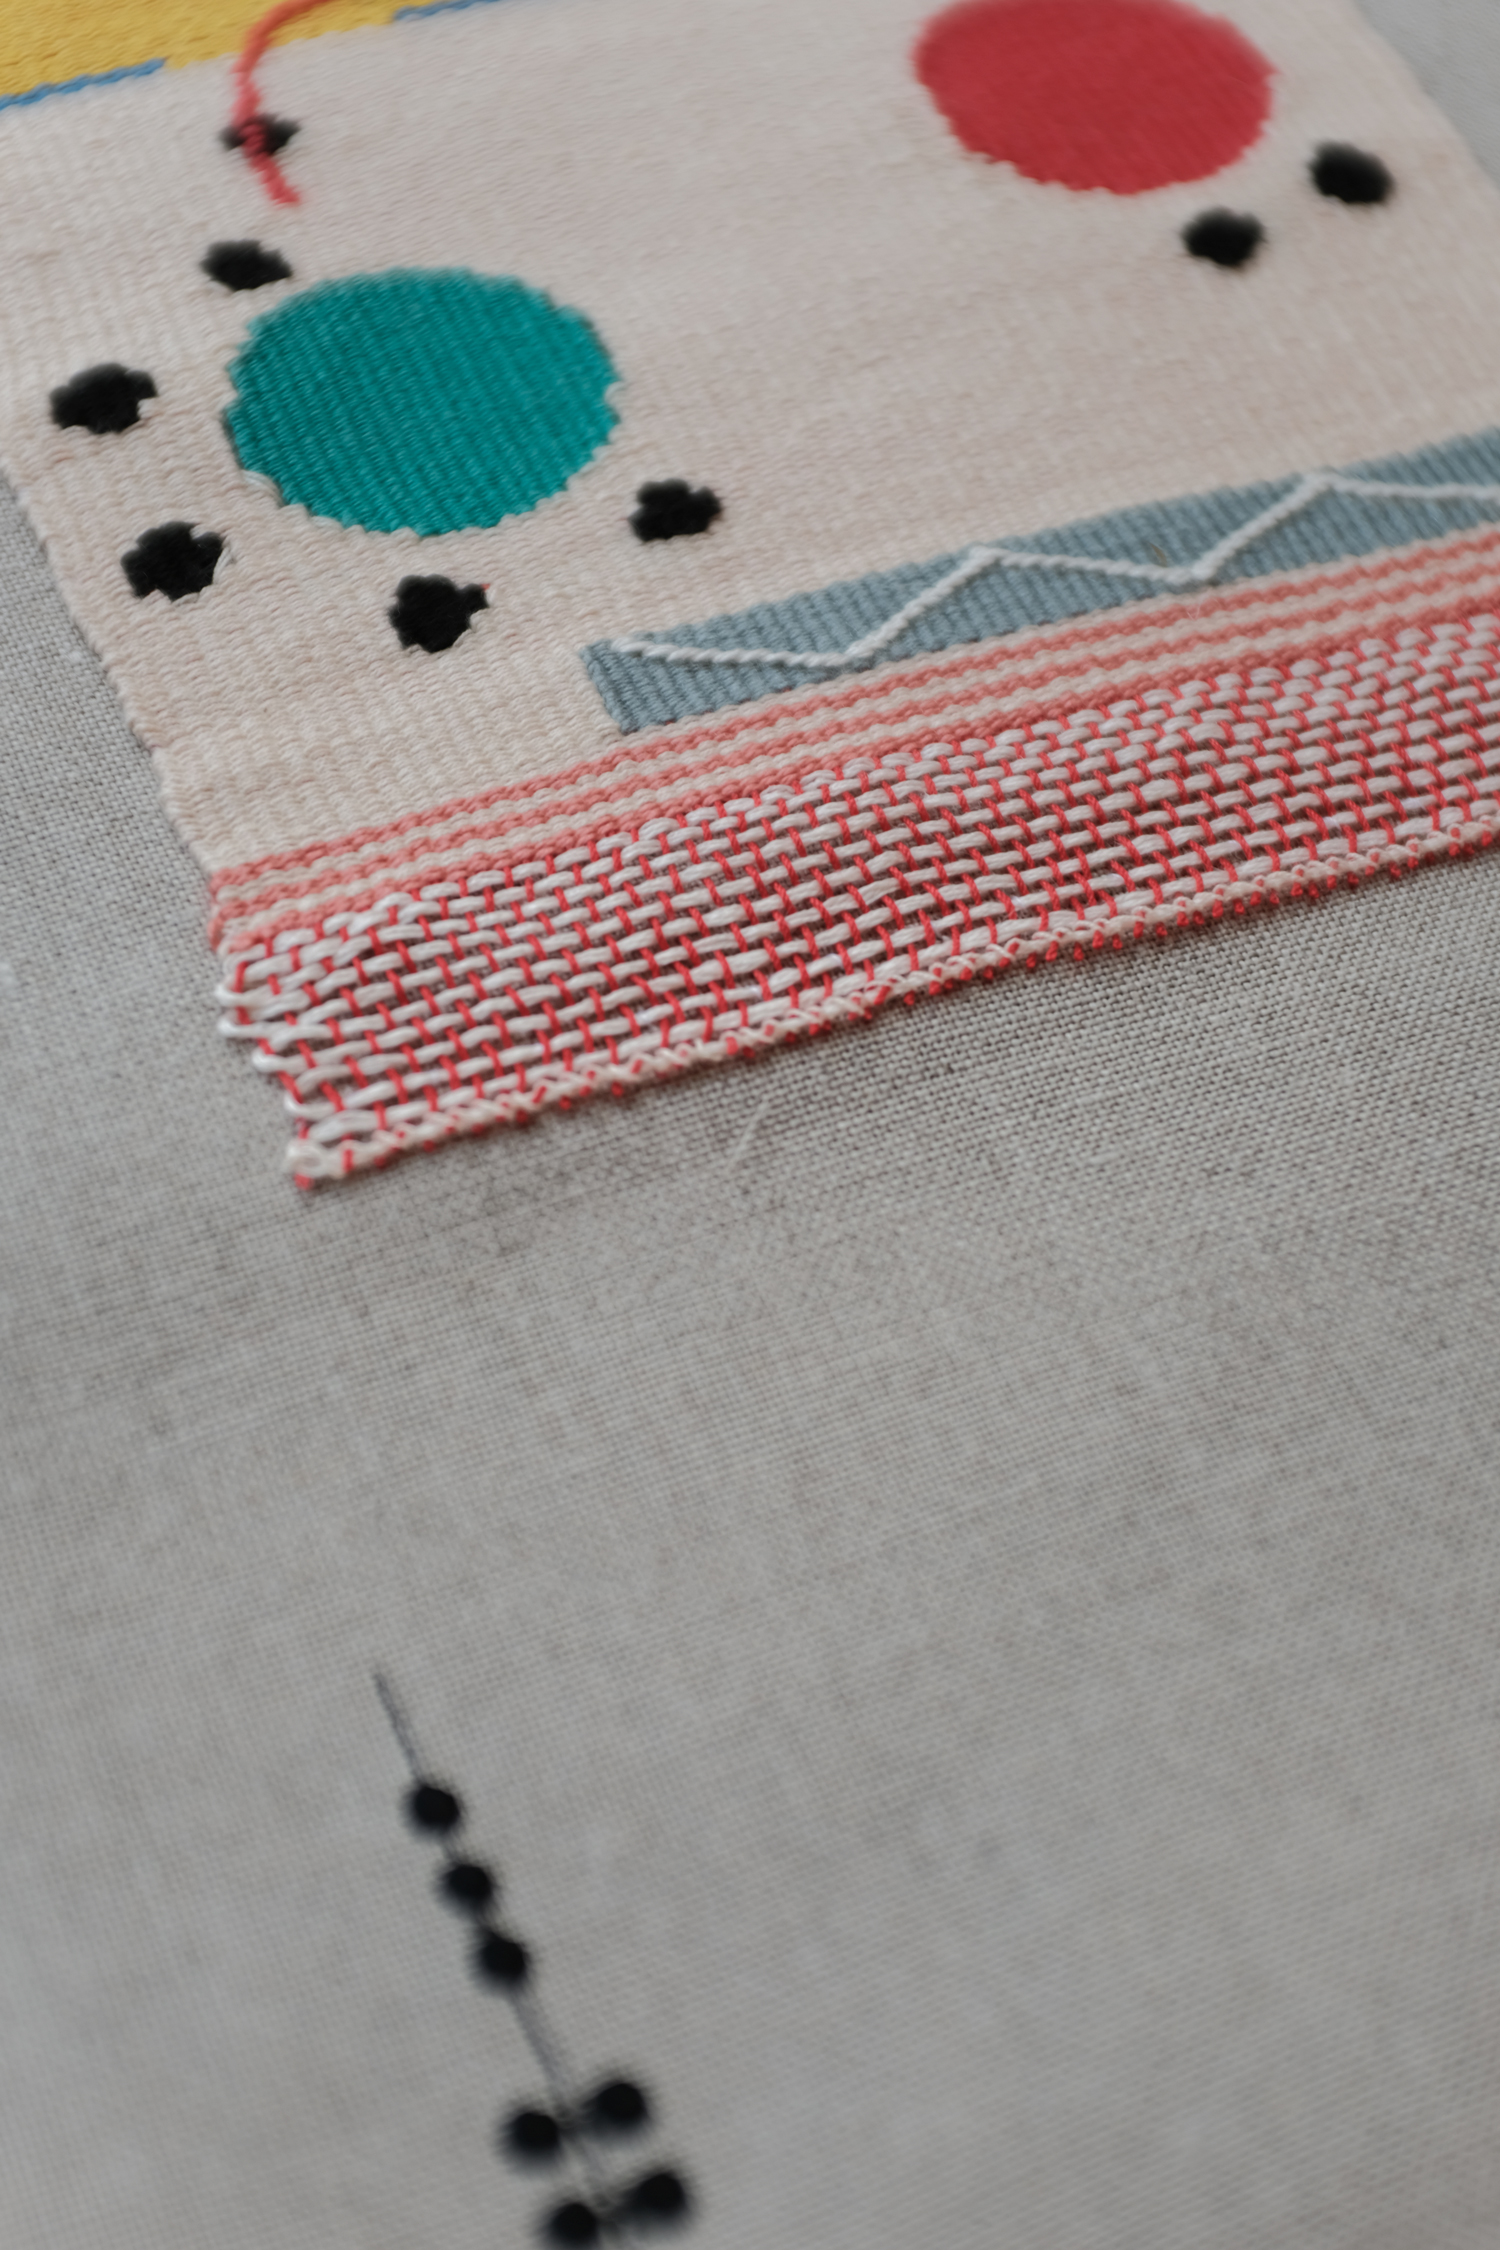 Baja Weaving series – Will You Take A Walk With Us?